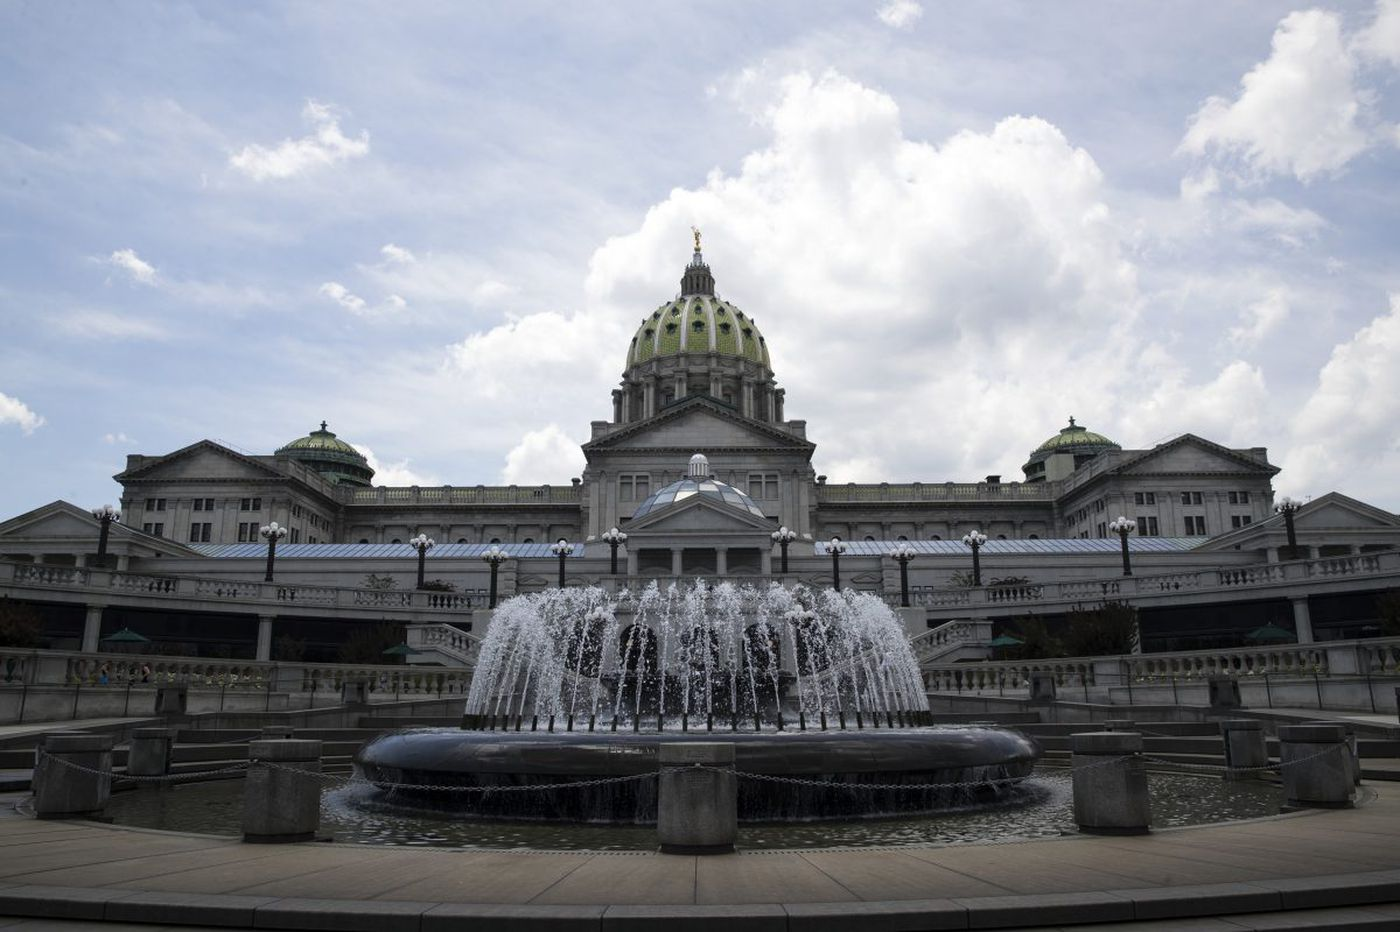 More borrowing, more gambling: How they're breaking budget impasse in Harrisburg